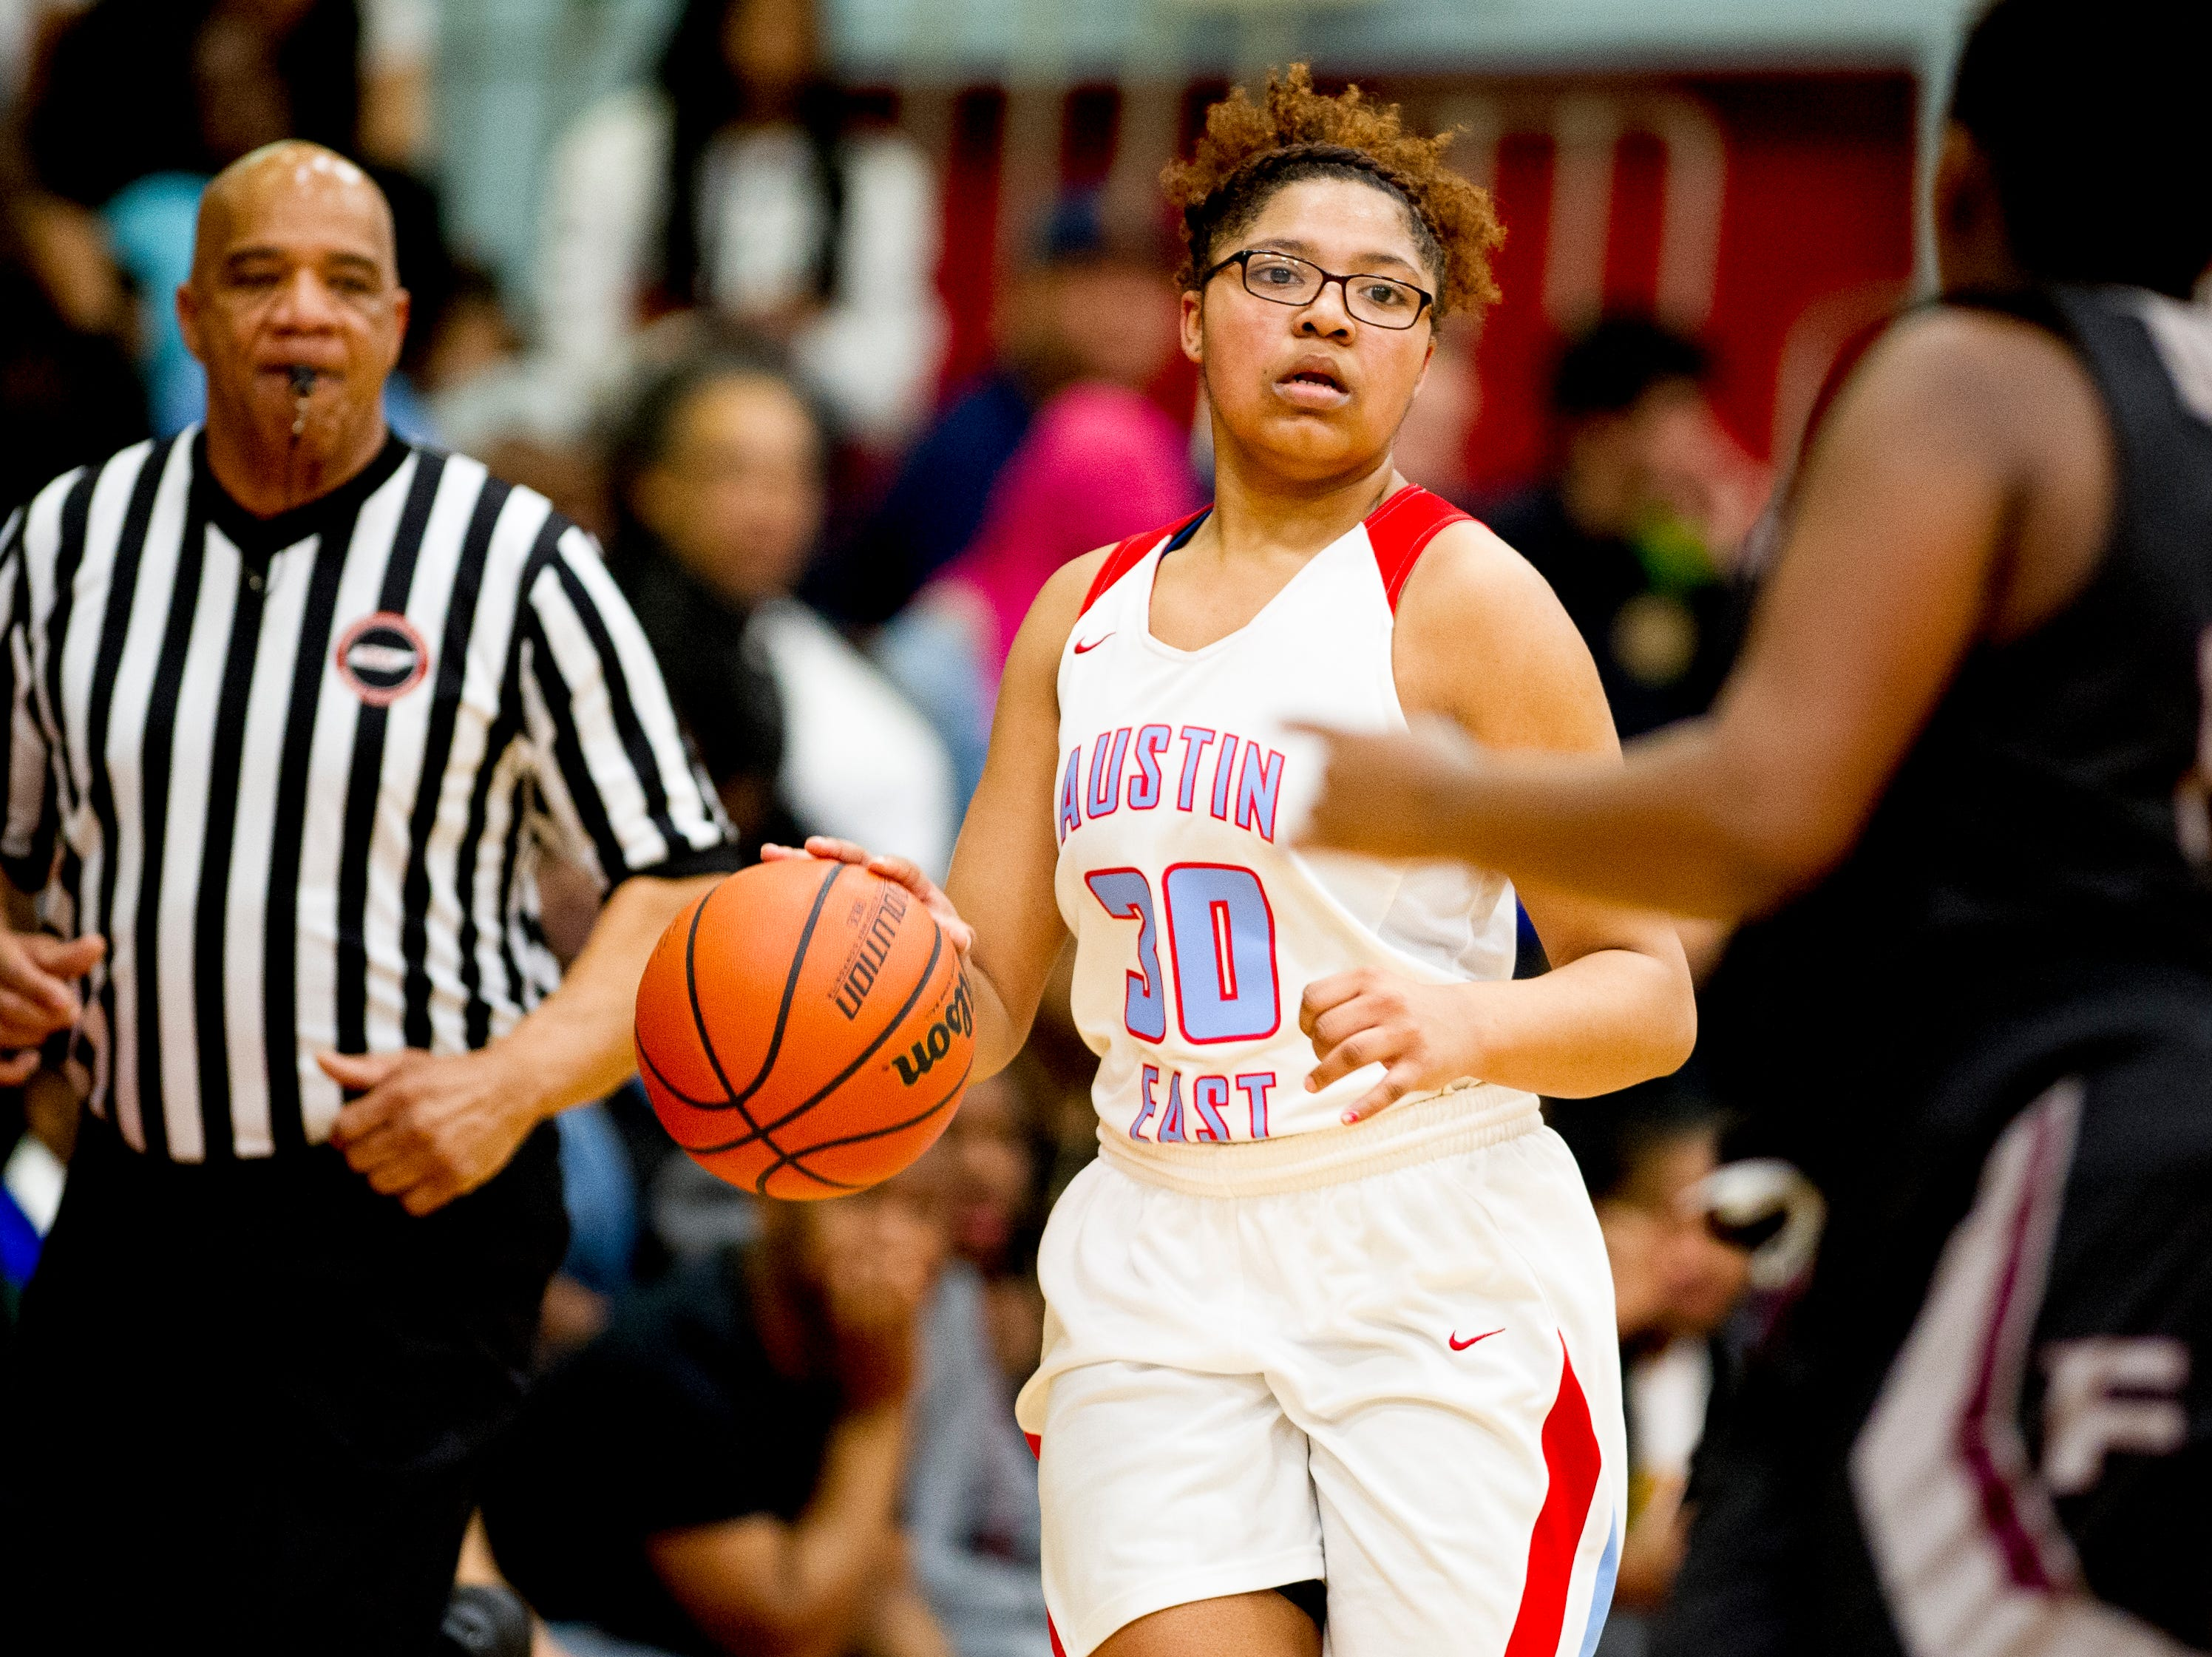 Austin-East's AnDaja Ware (30) dribbles down the court during a game between Austin-East and Fulton at Austin-East High School in Knoxville, Tennessee on Saturday, January 5, 2019.